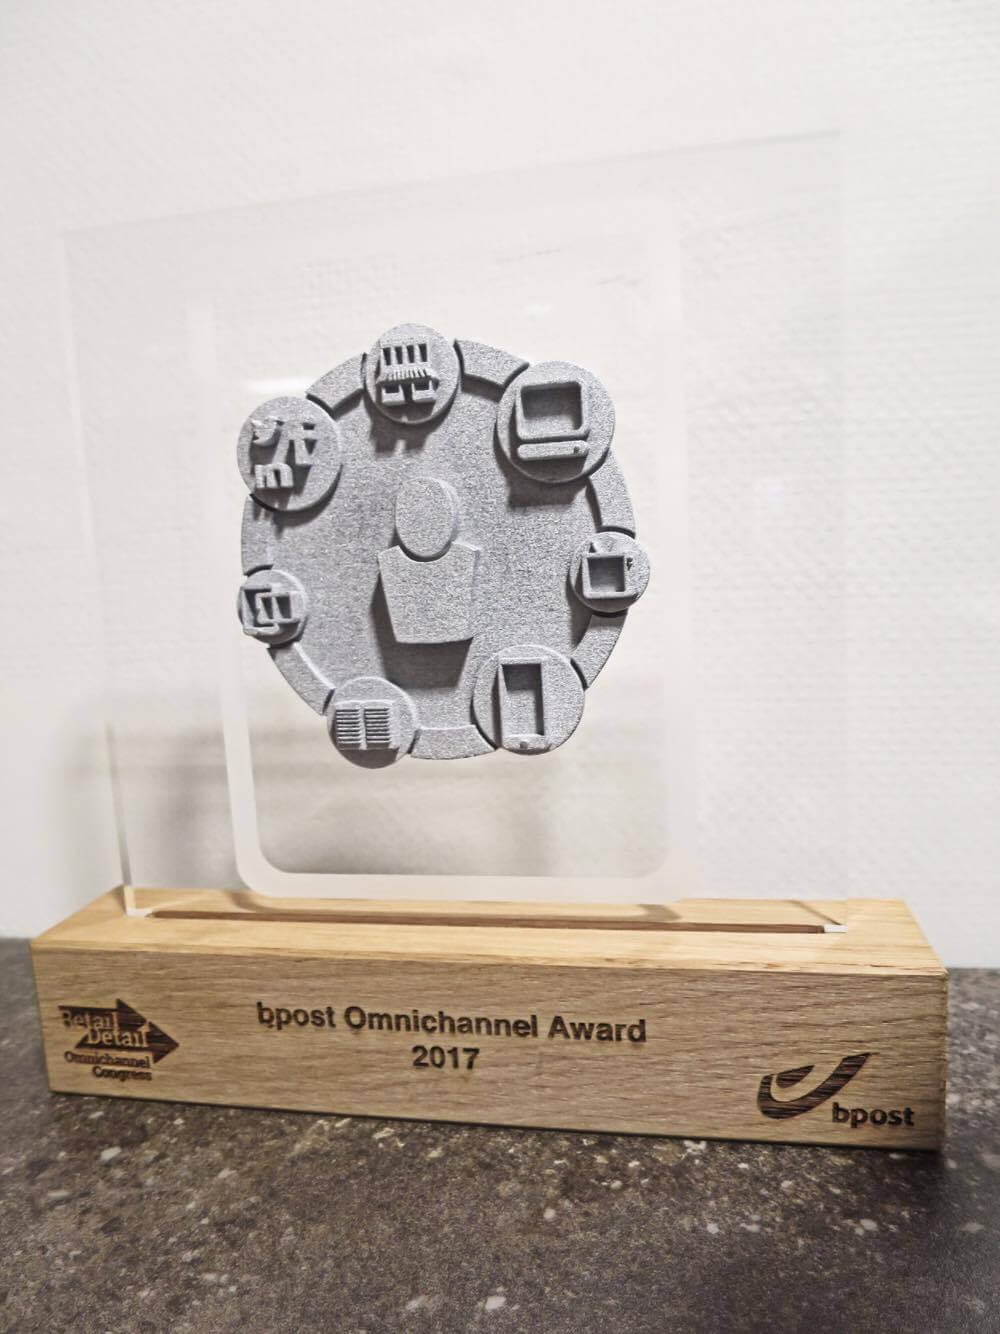 bpost-Omnichannel-Award